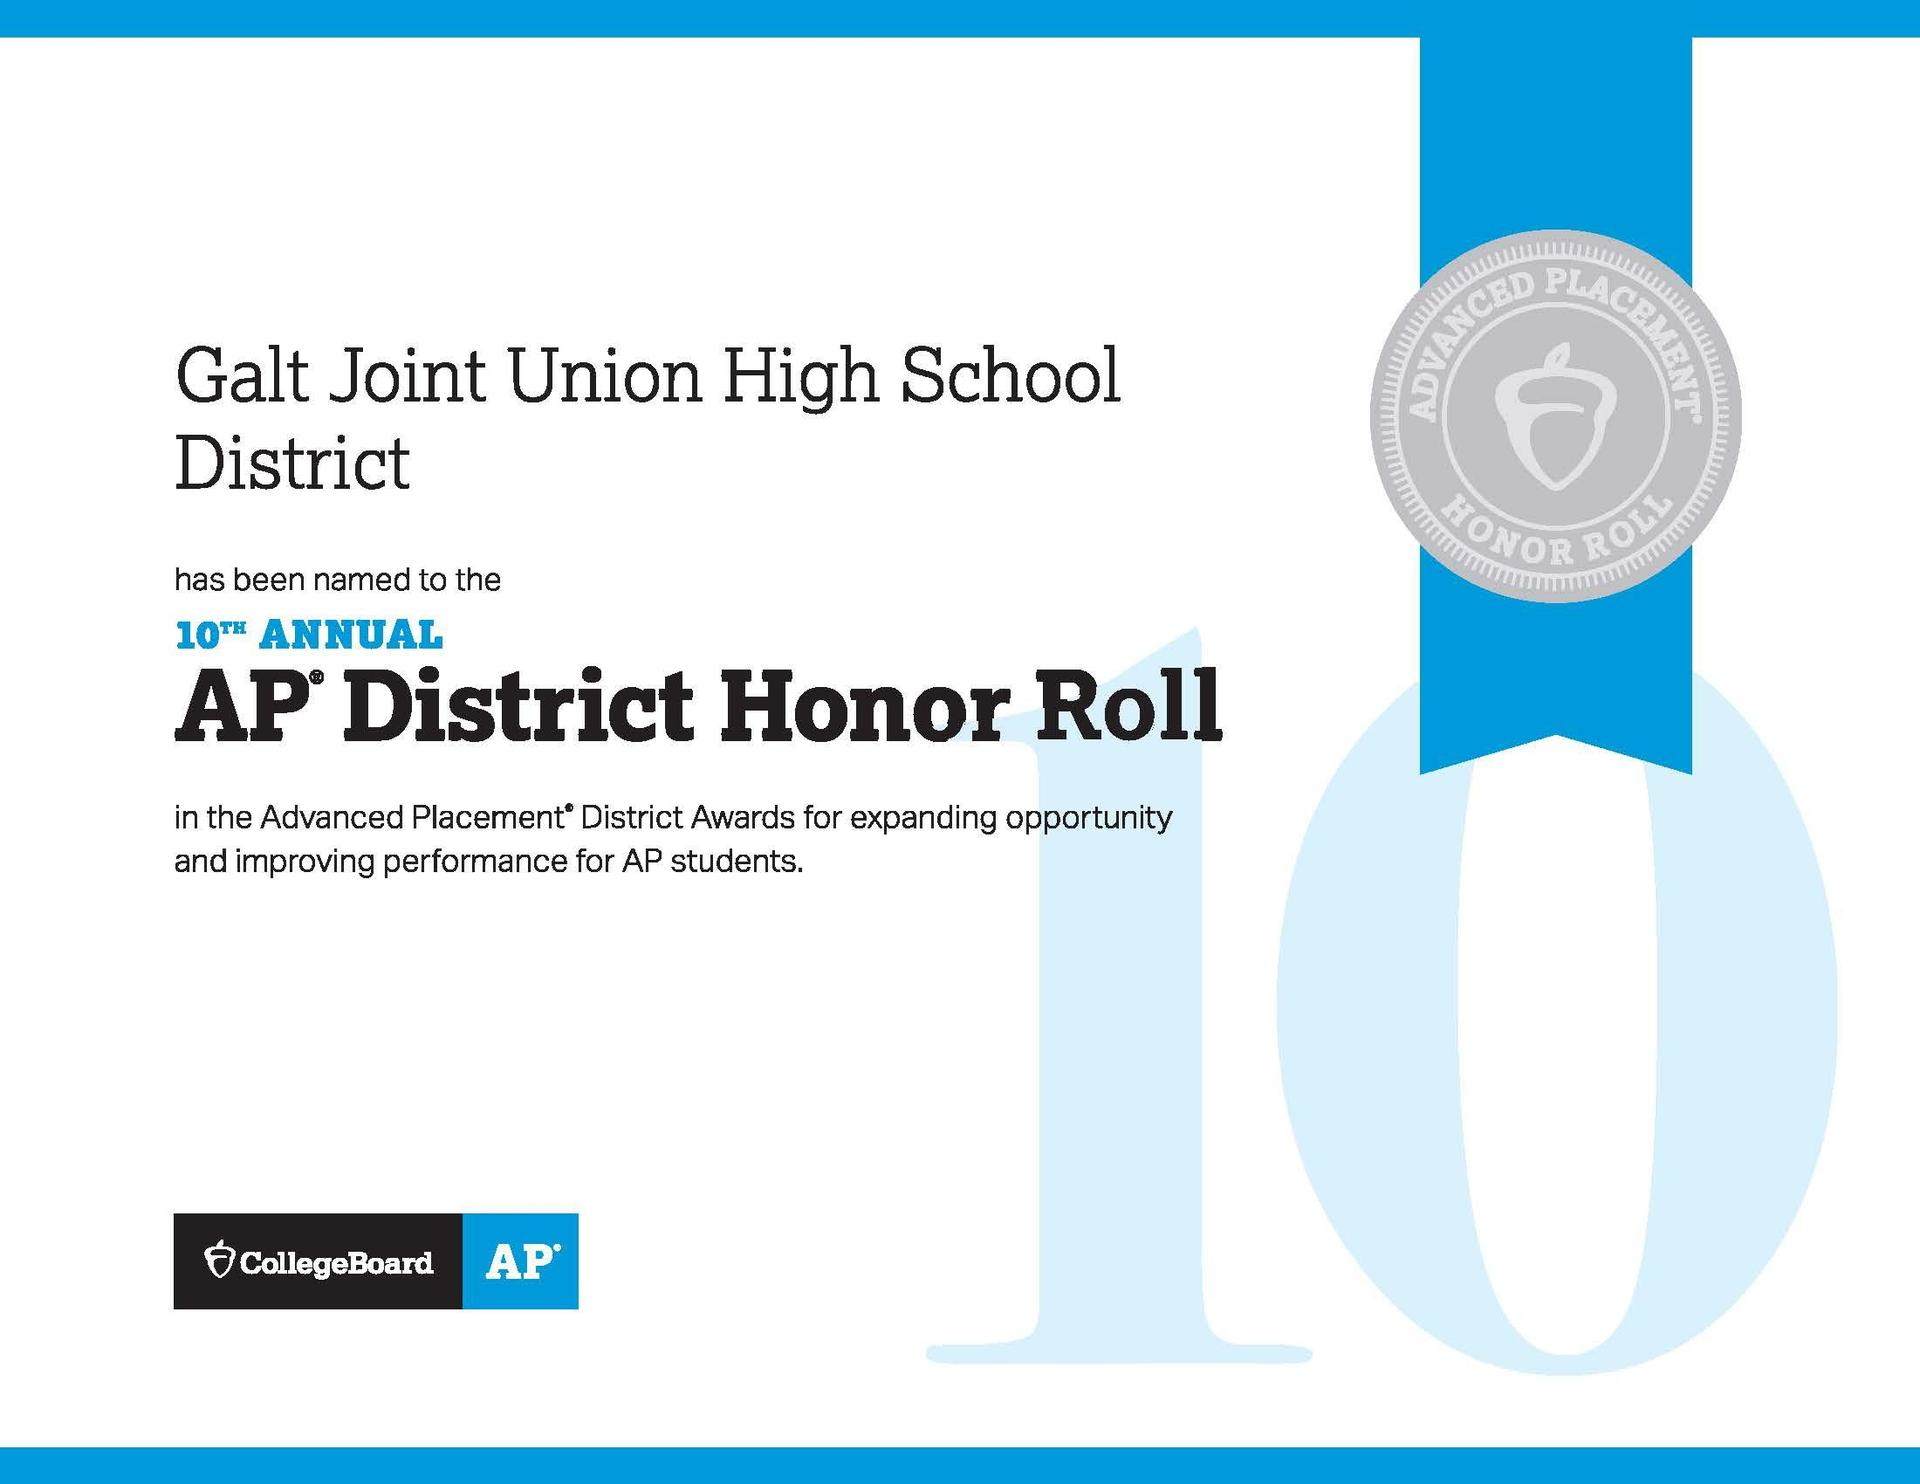 AP District Honor Roll Certificate - Galt Joint Union High School District